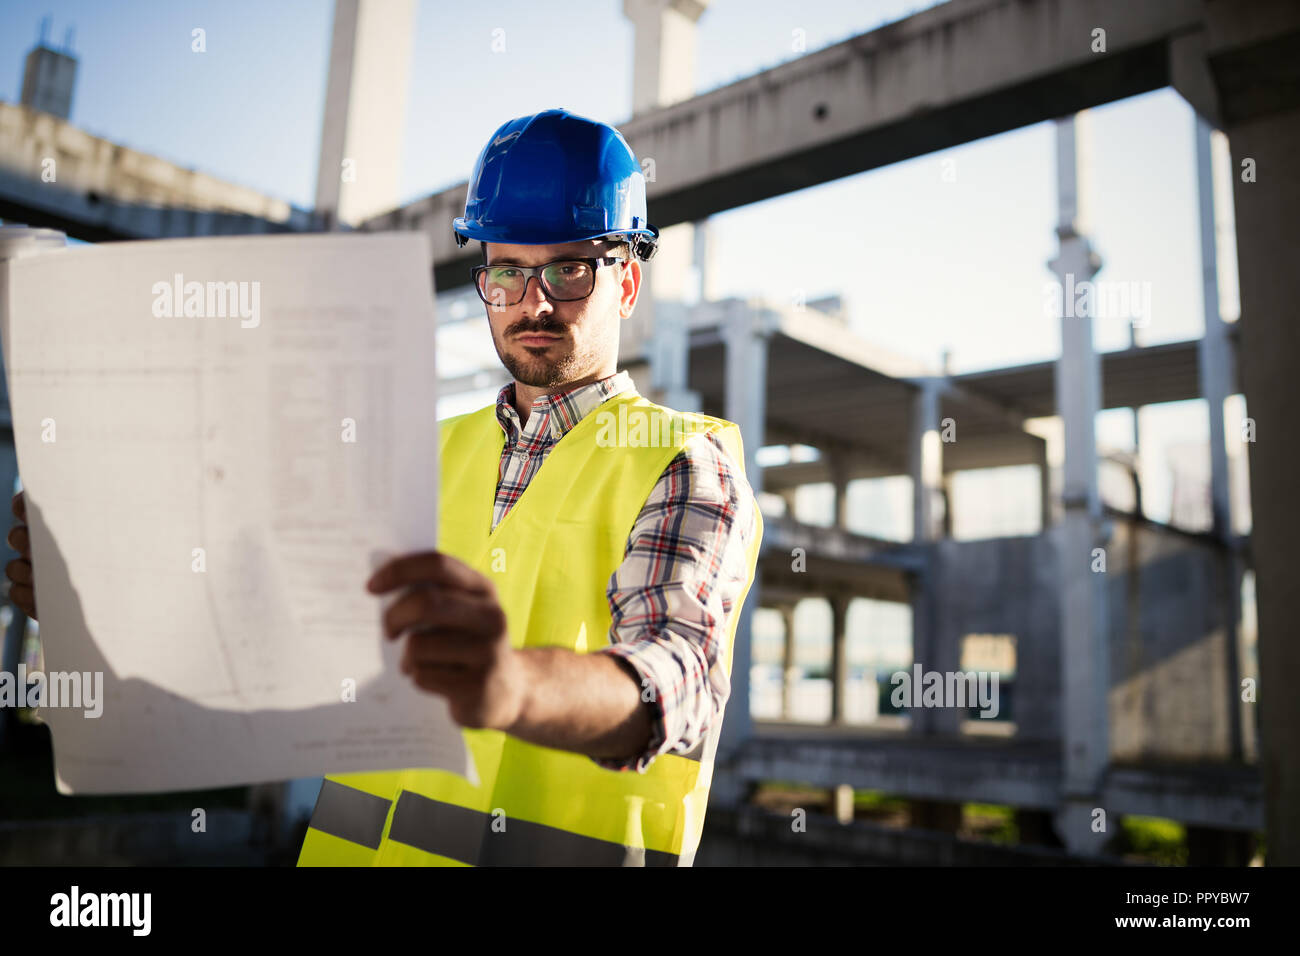 Construction foreman on the job site - Stock Image